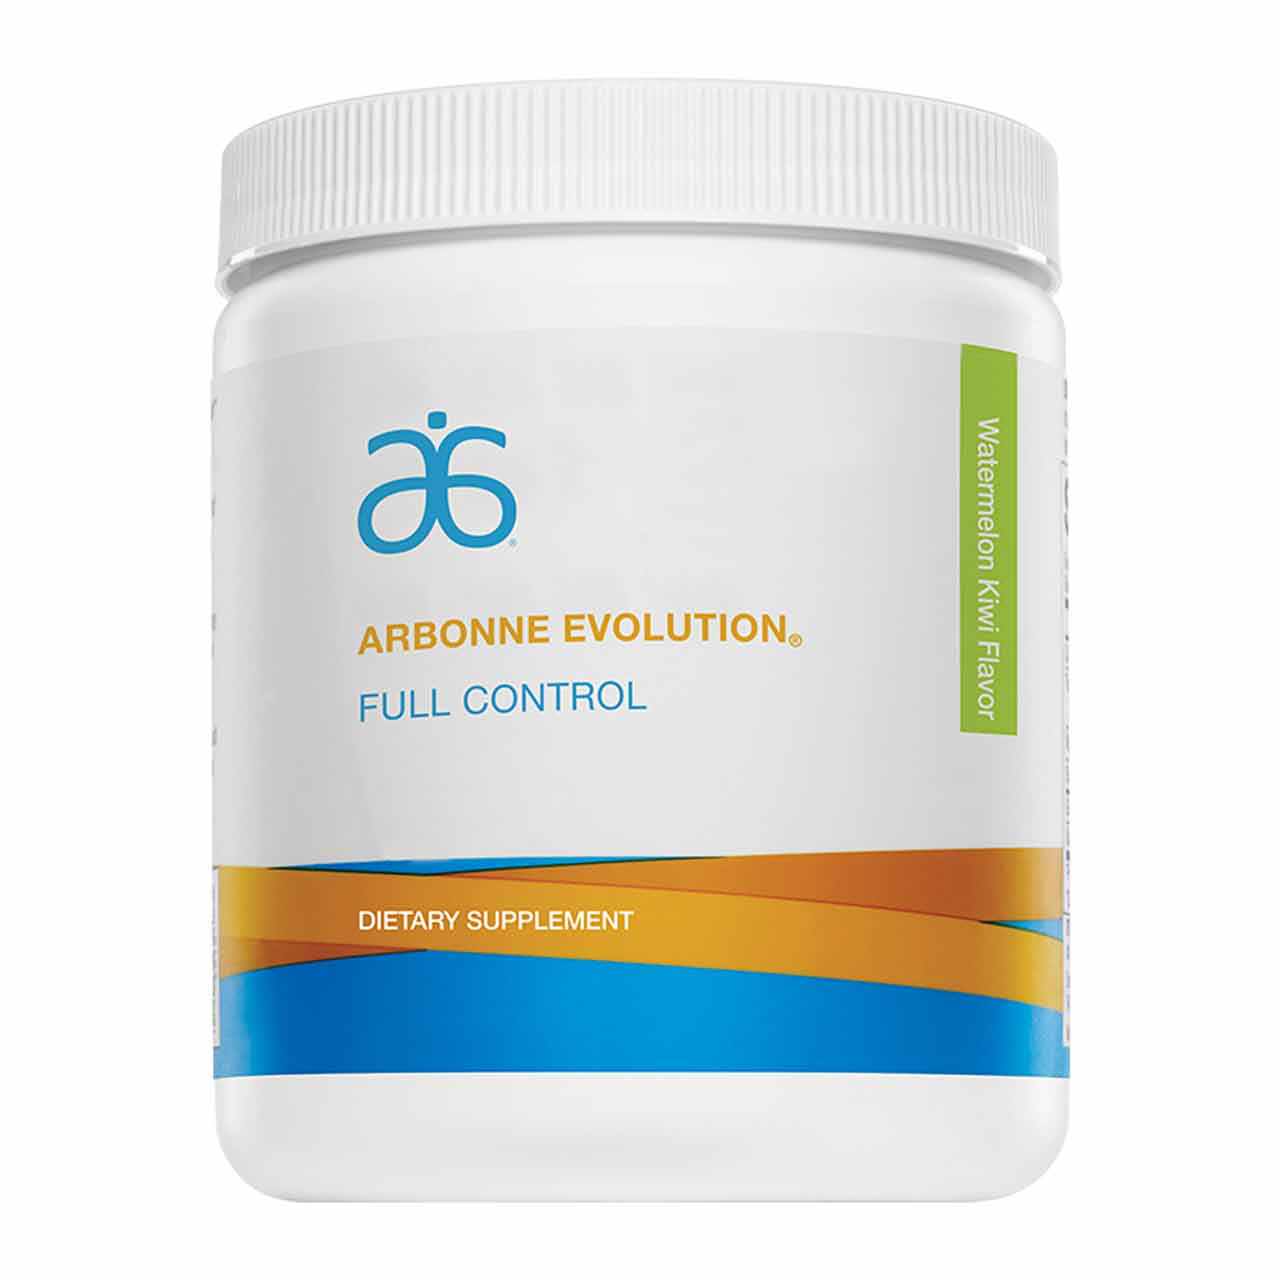 Arbonne Evolution Full Control